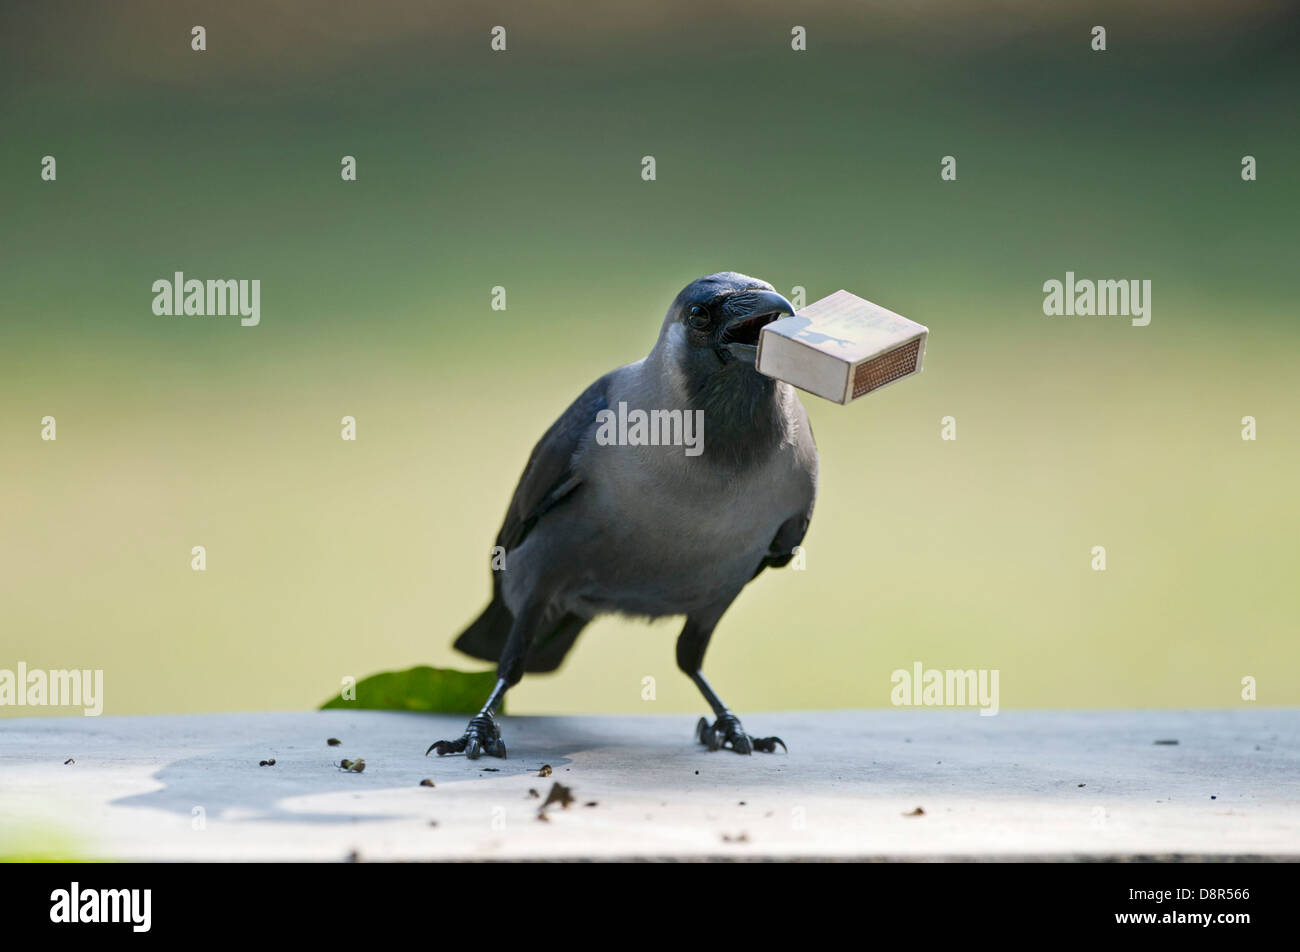 House Crow (Corvus splendens) stealing match box from table Bharatpur India - Stock Image